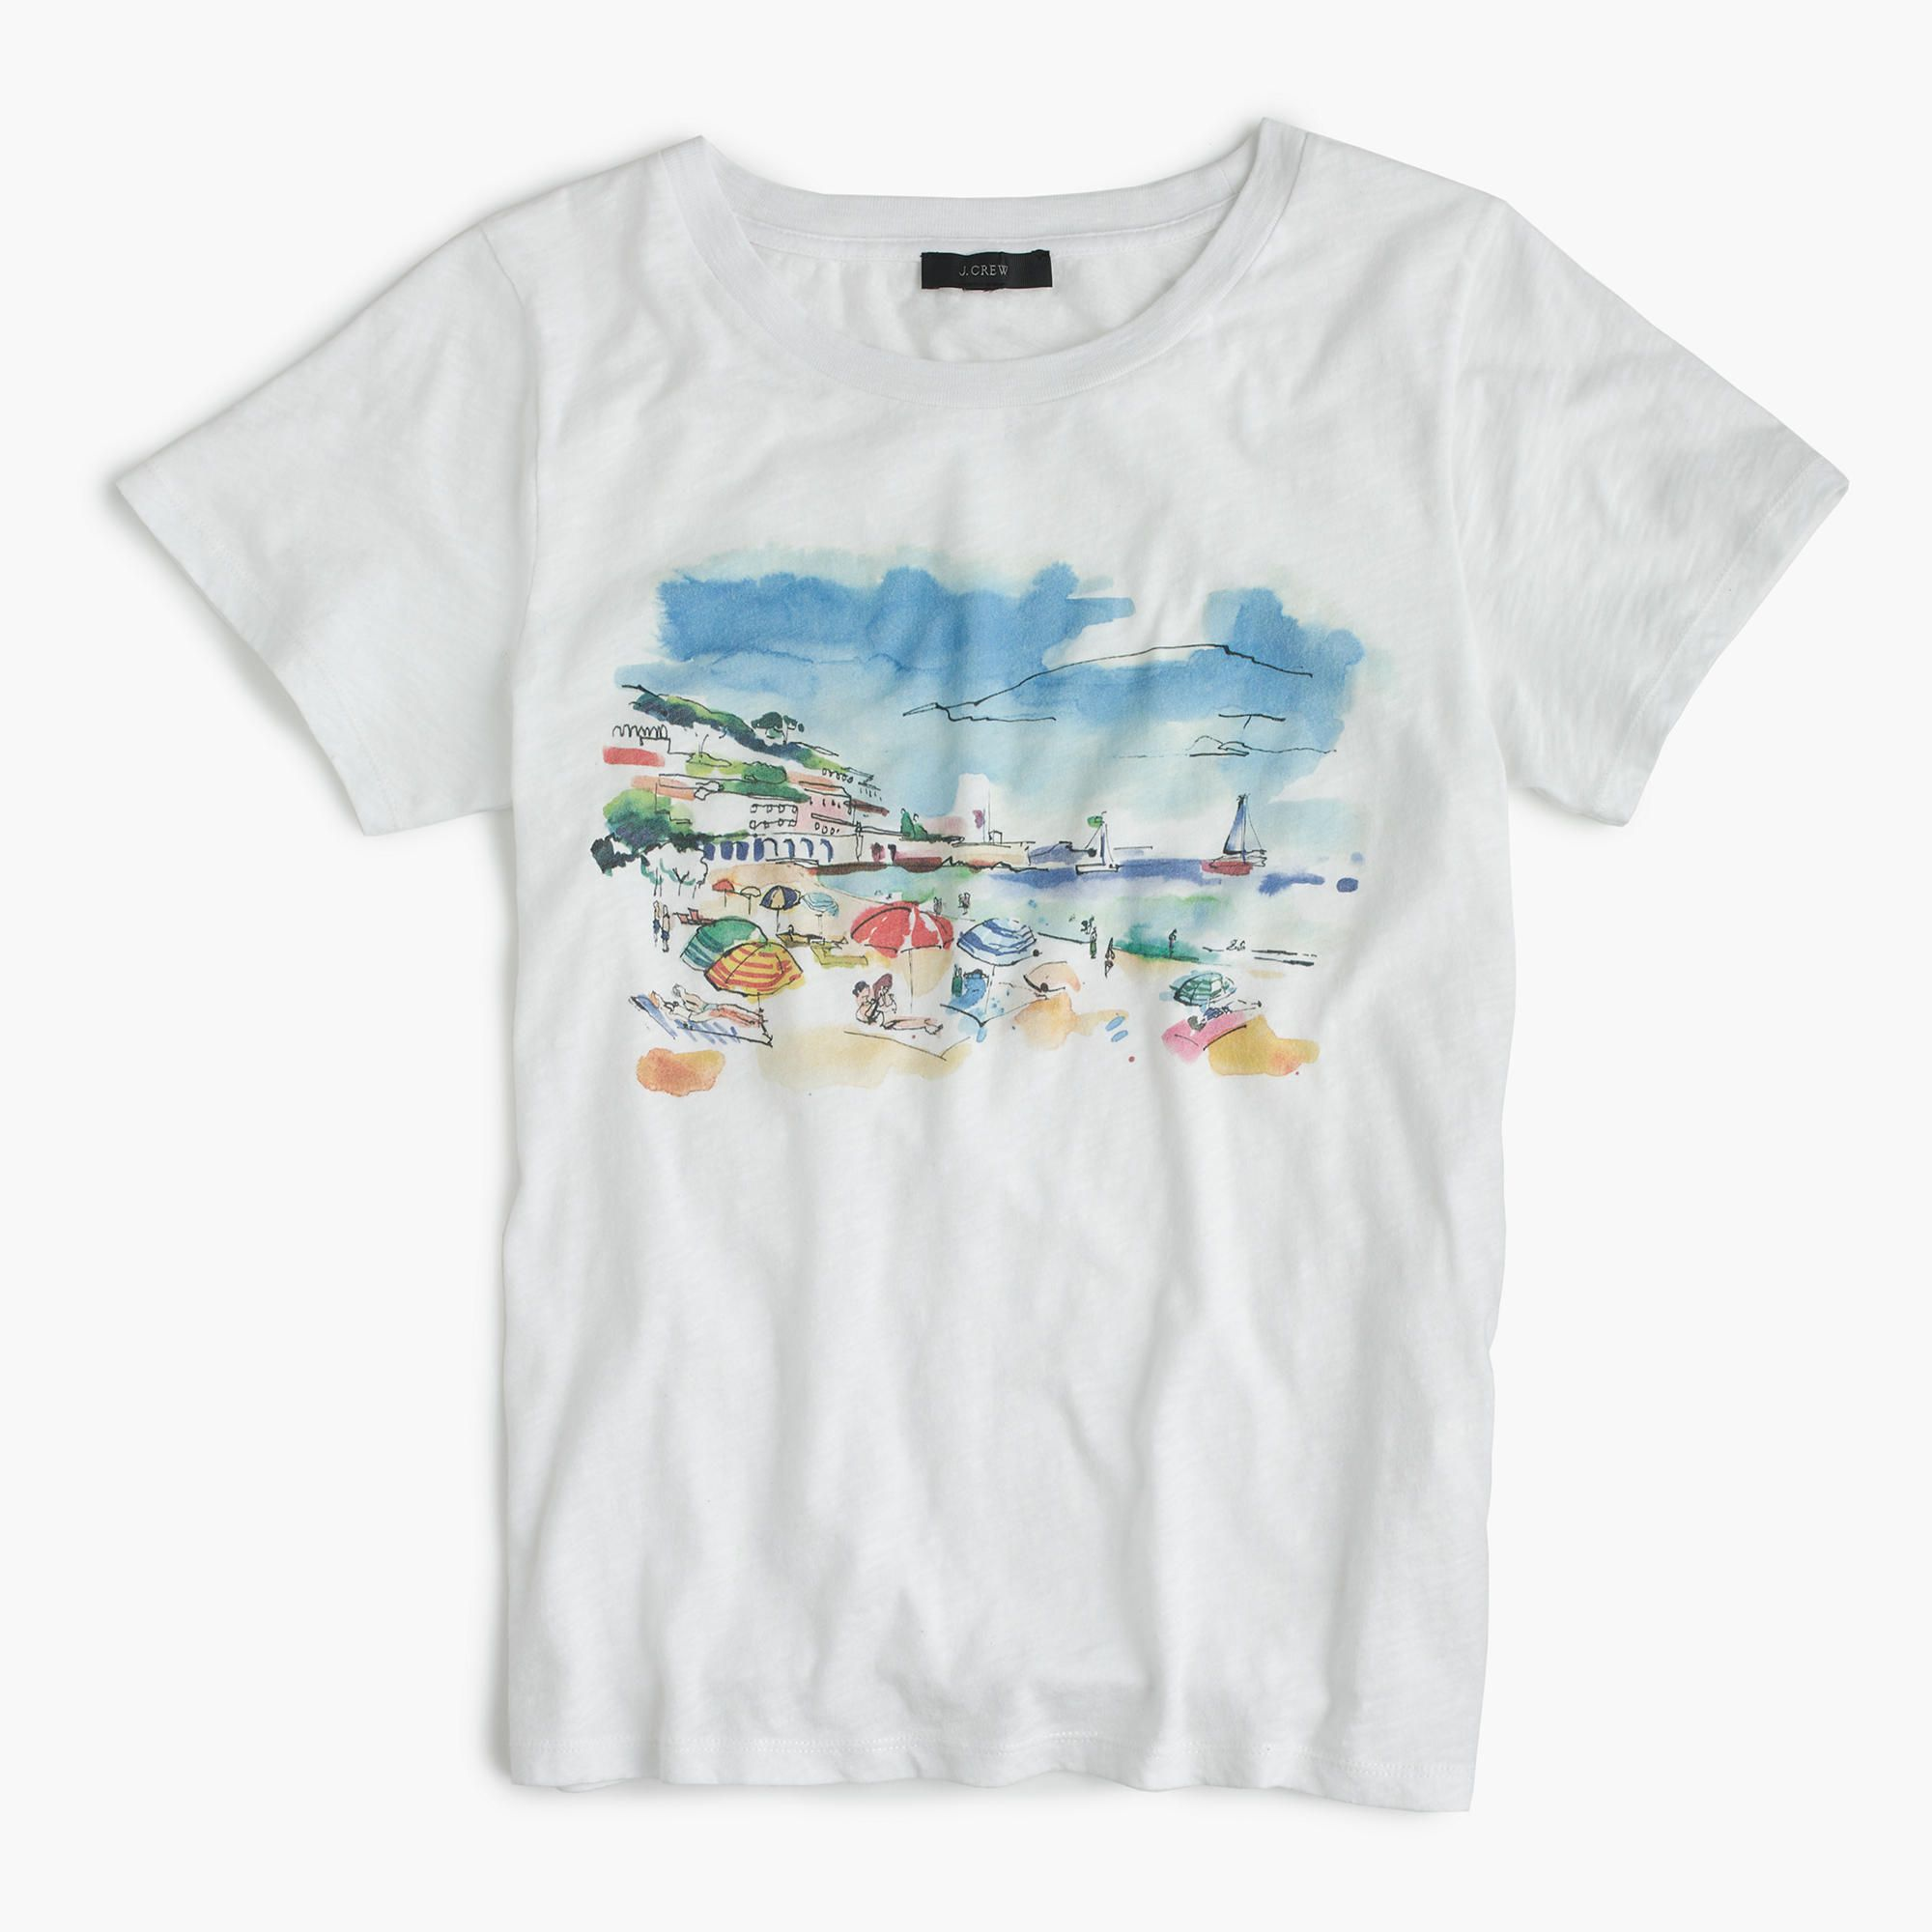 This Vintage Cotton Tee Famous For Its Heathered Texture And